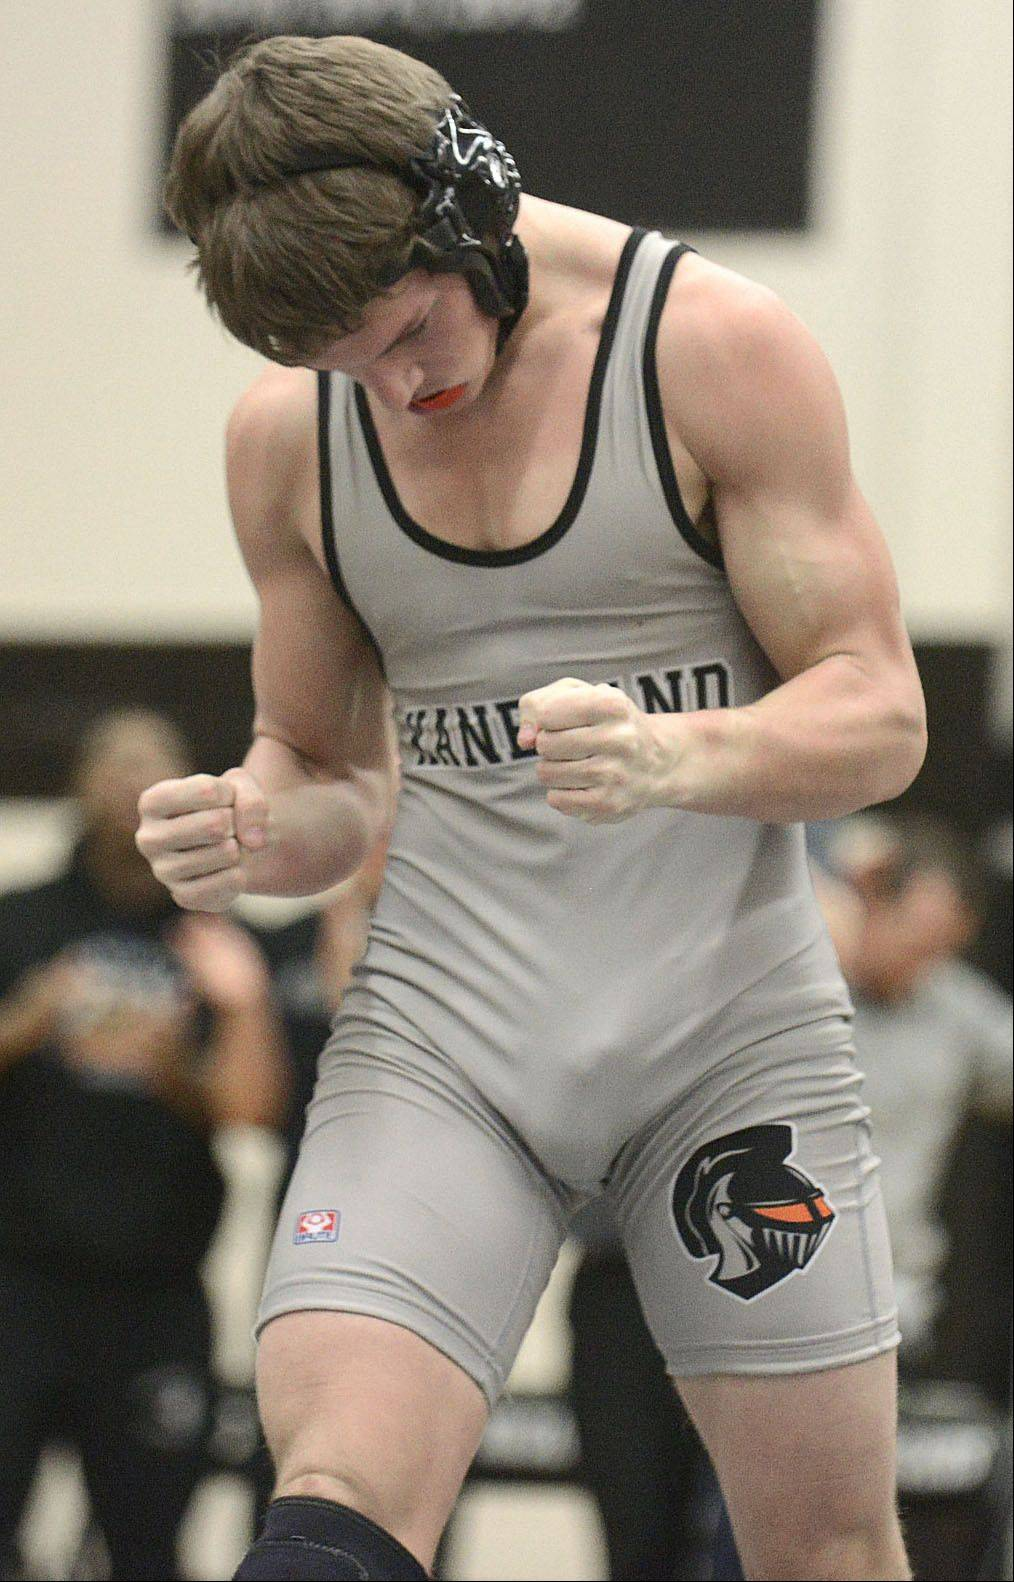 Kaneland's Dane Goodenough celebrates his win in the 138 pound match over DeKalb's Jackson Montgomery on Thursday, December 12.